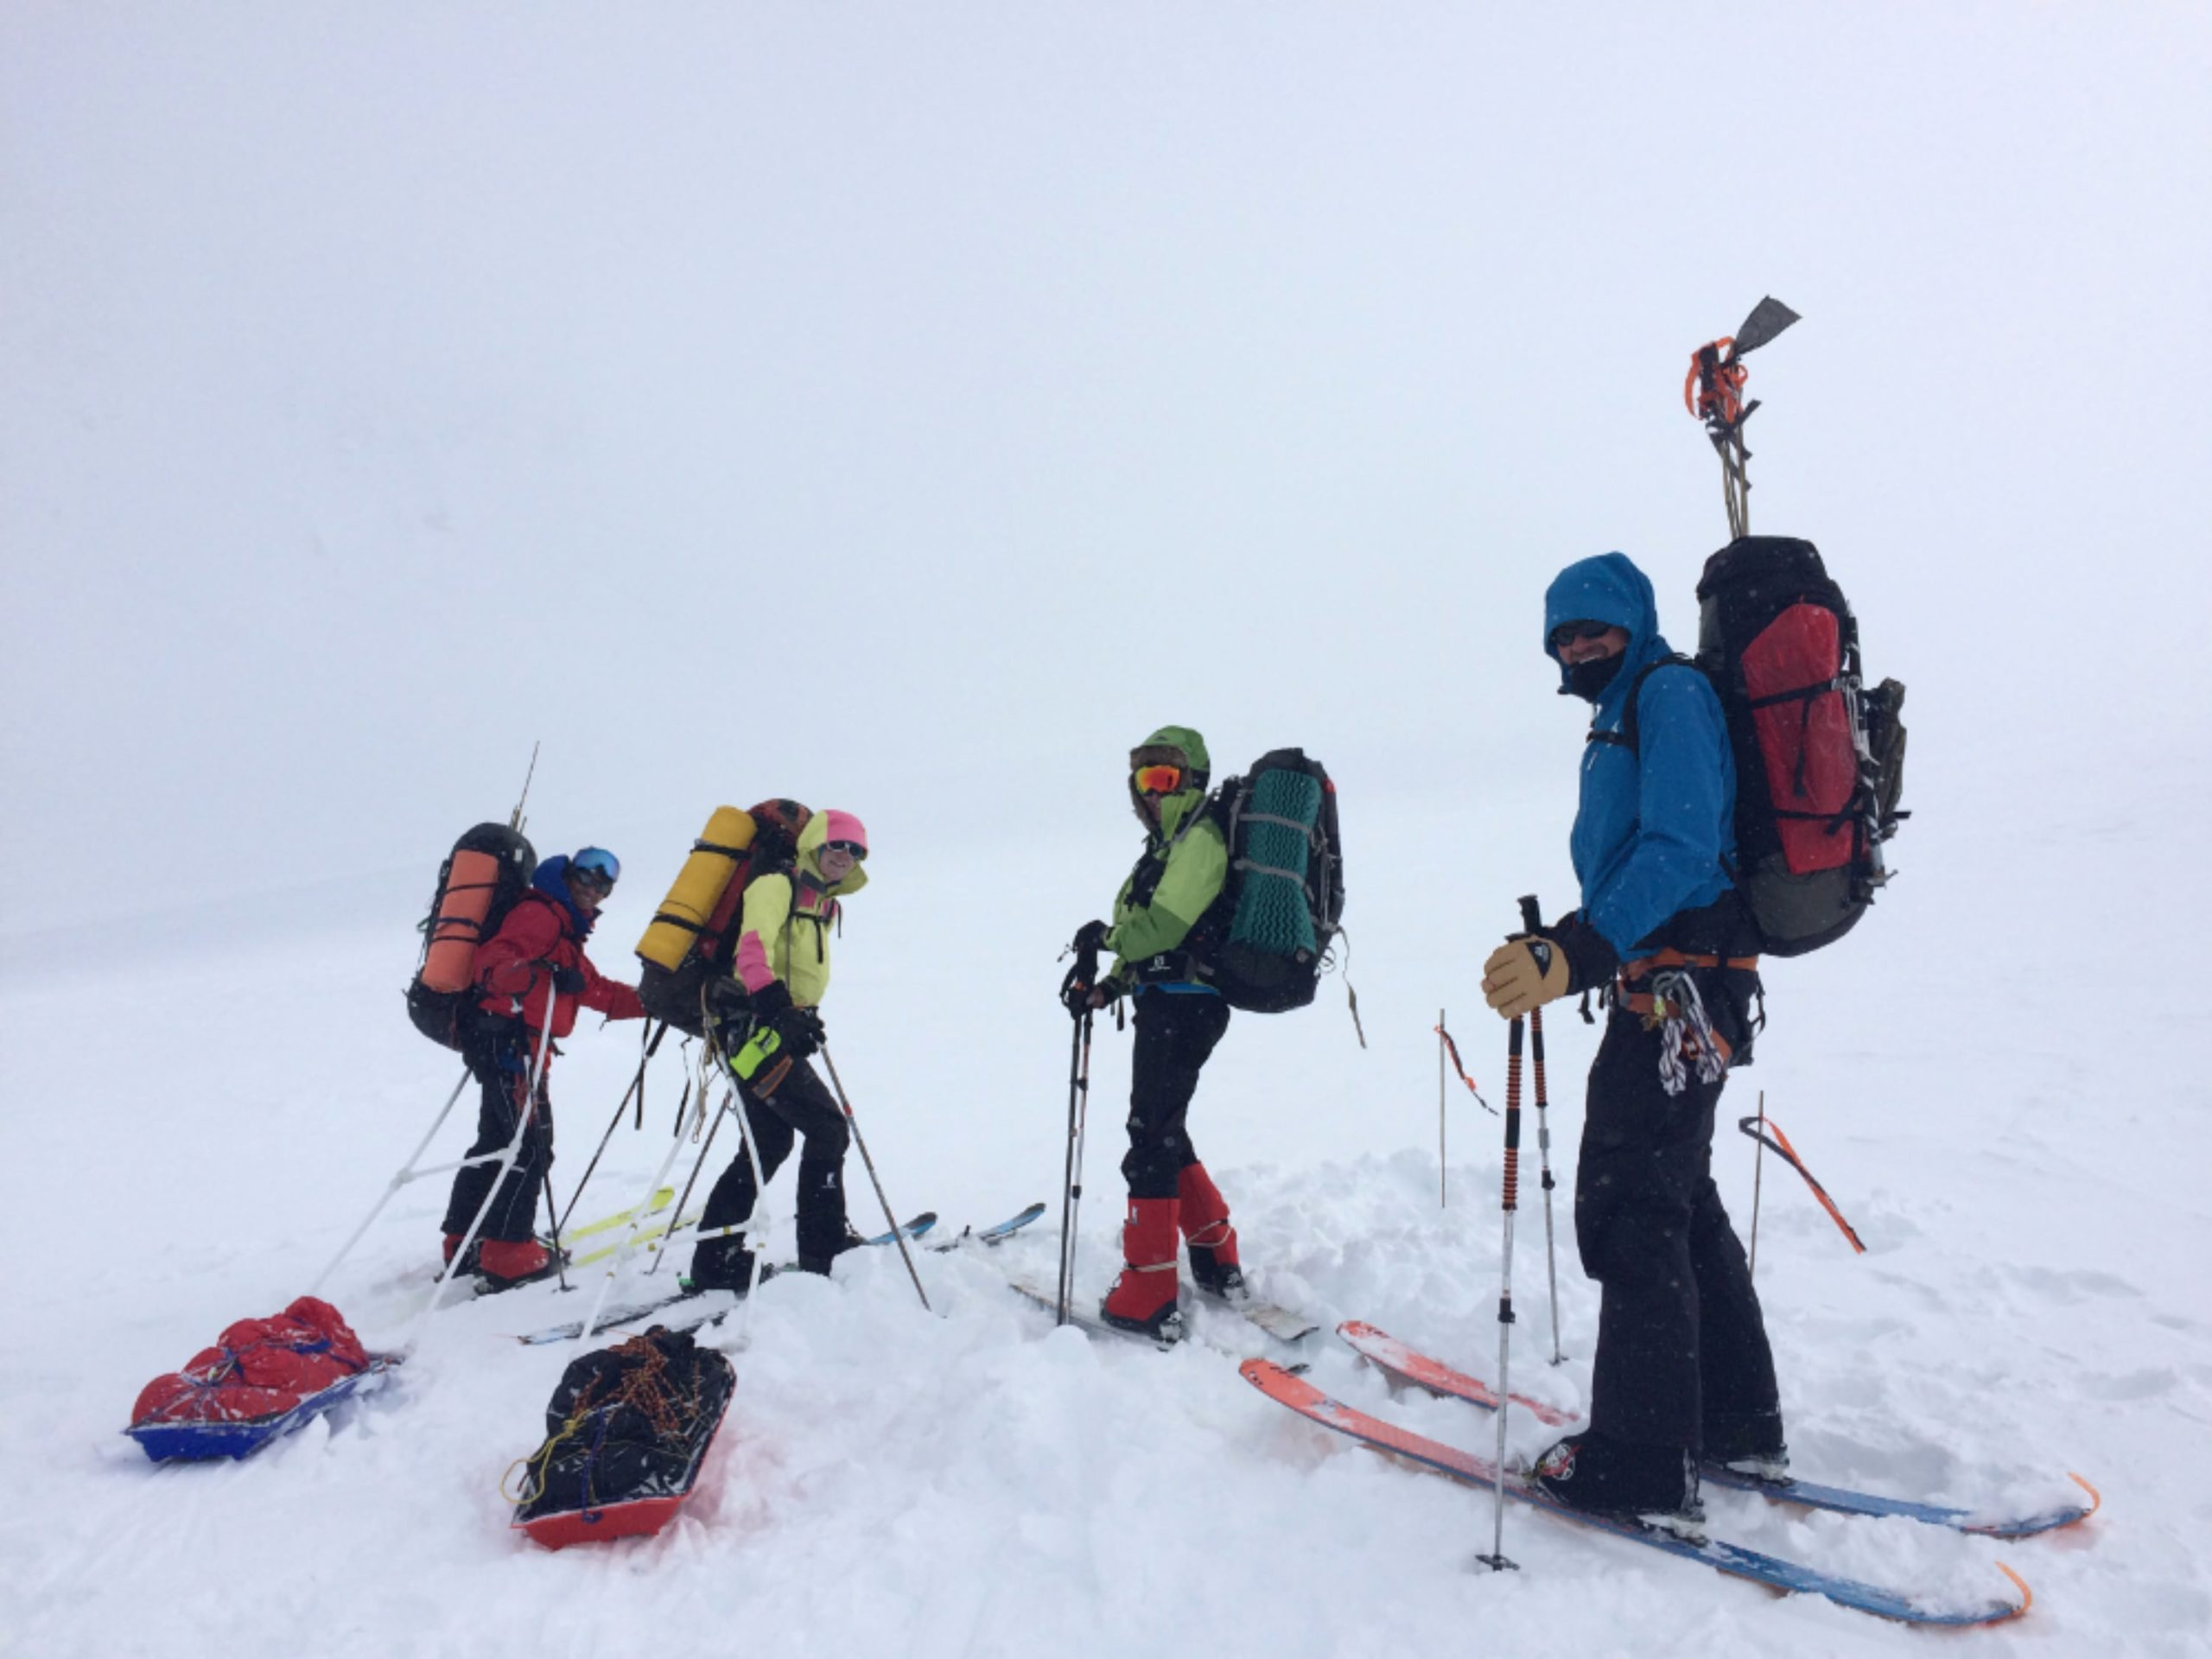 Cathy ski mountaineering in Canada